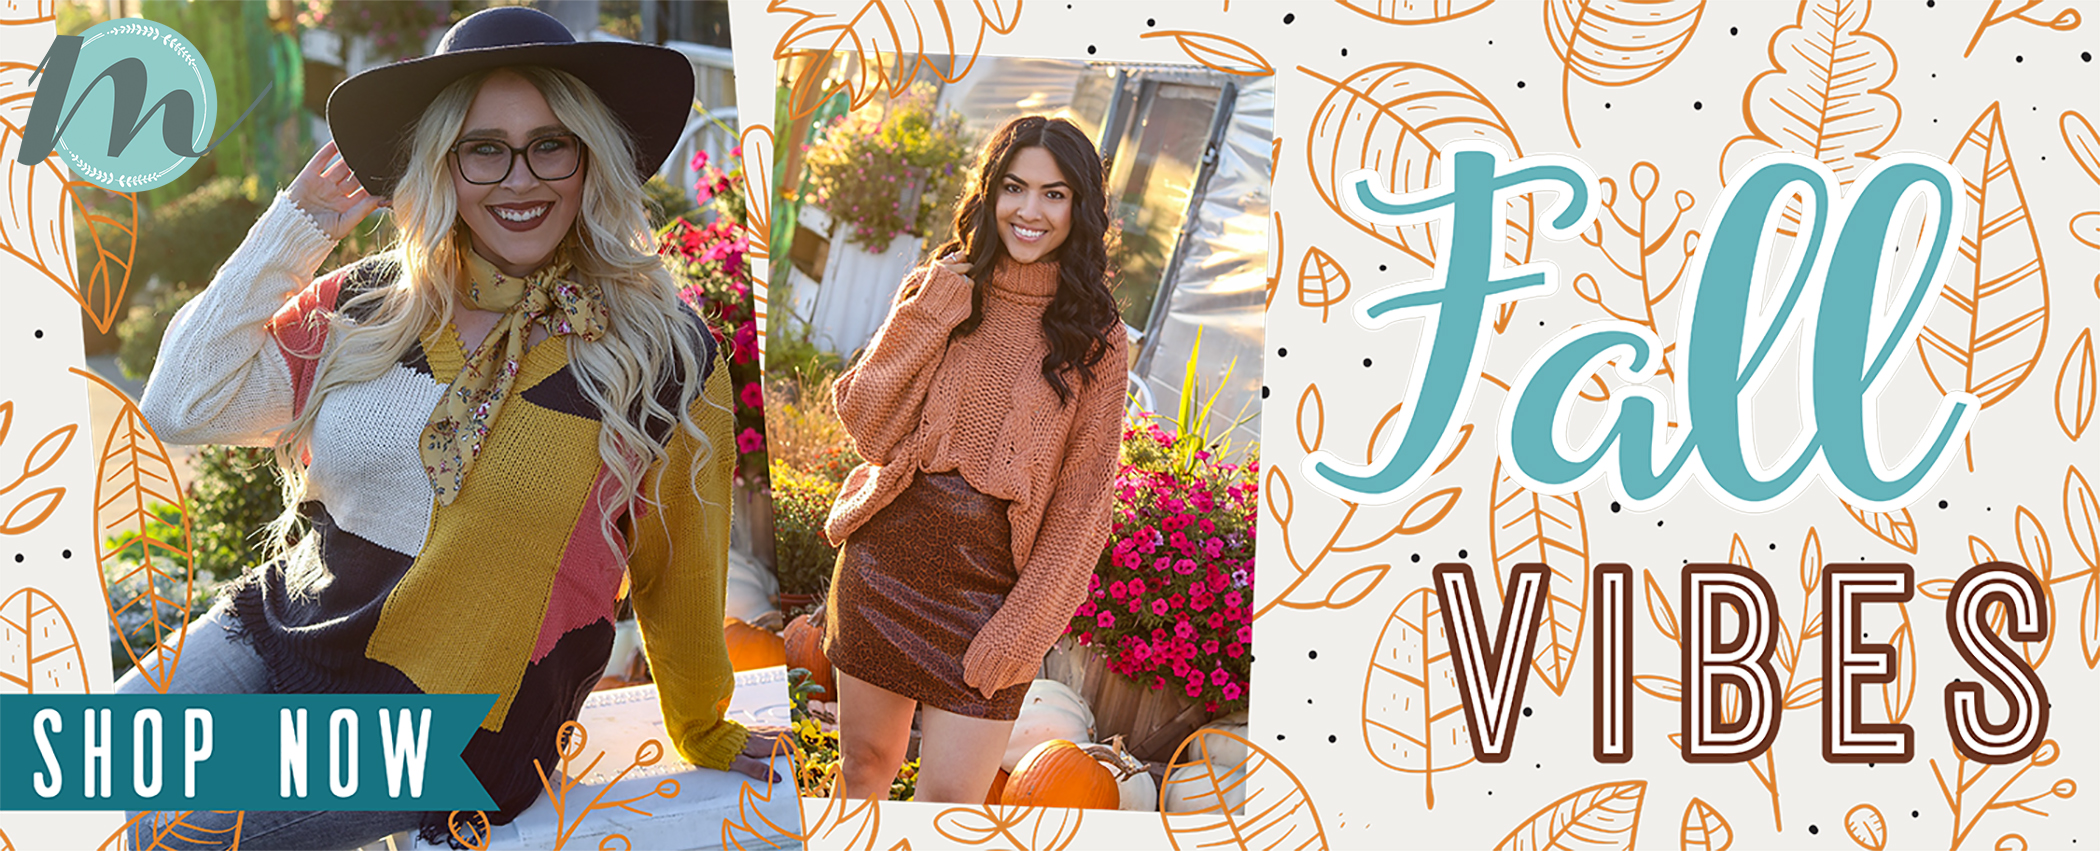 Fall_Web_Header